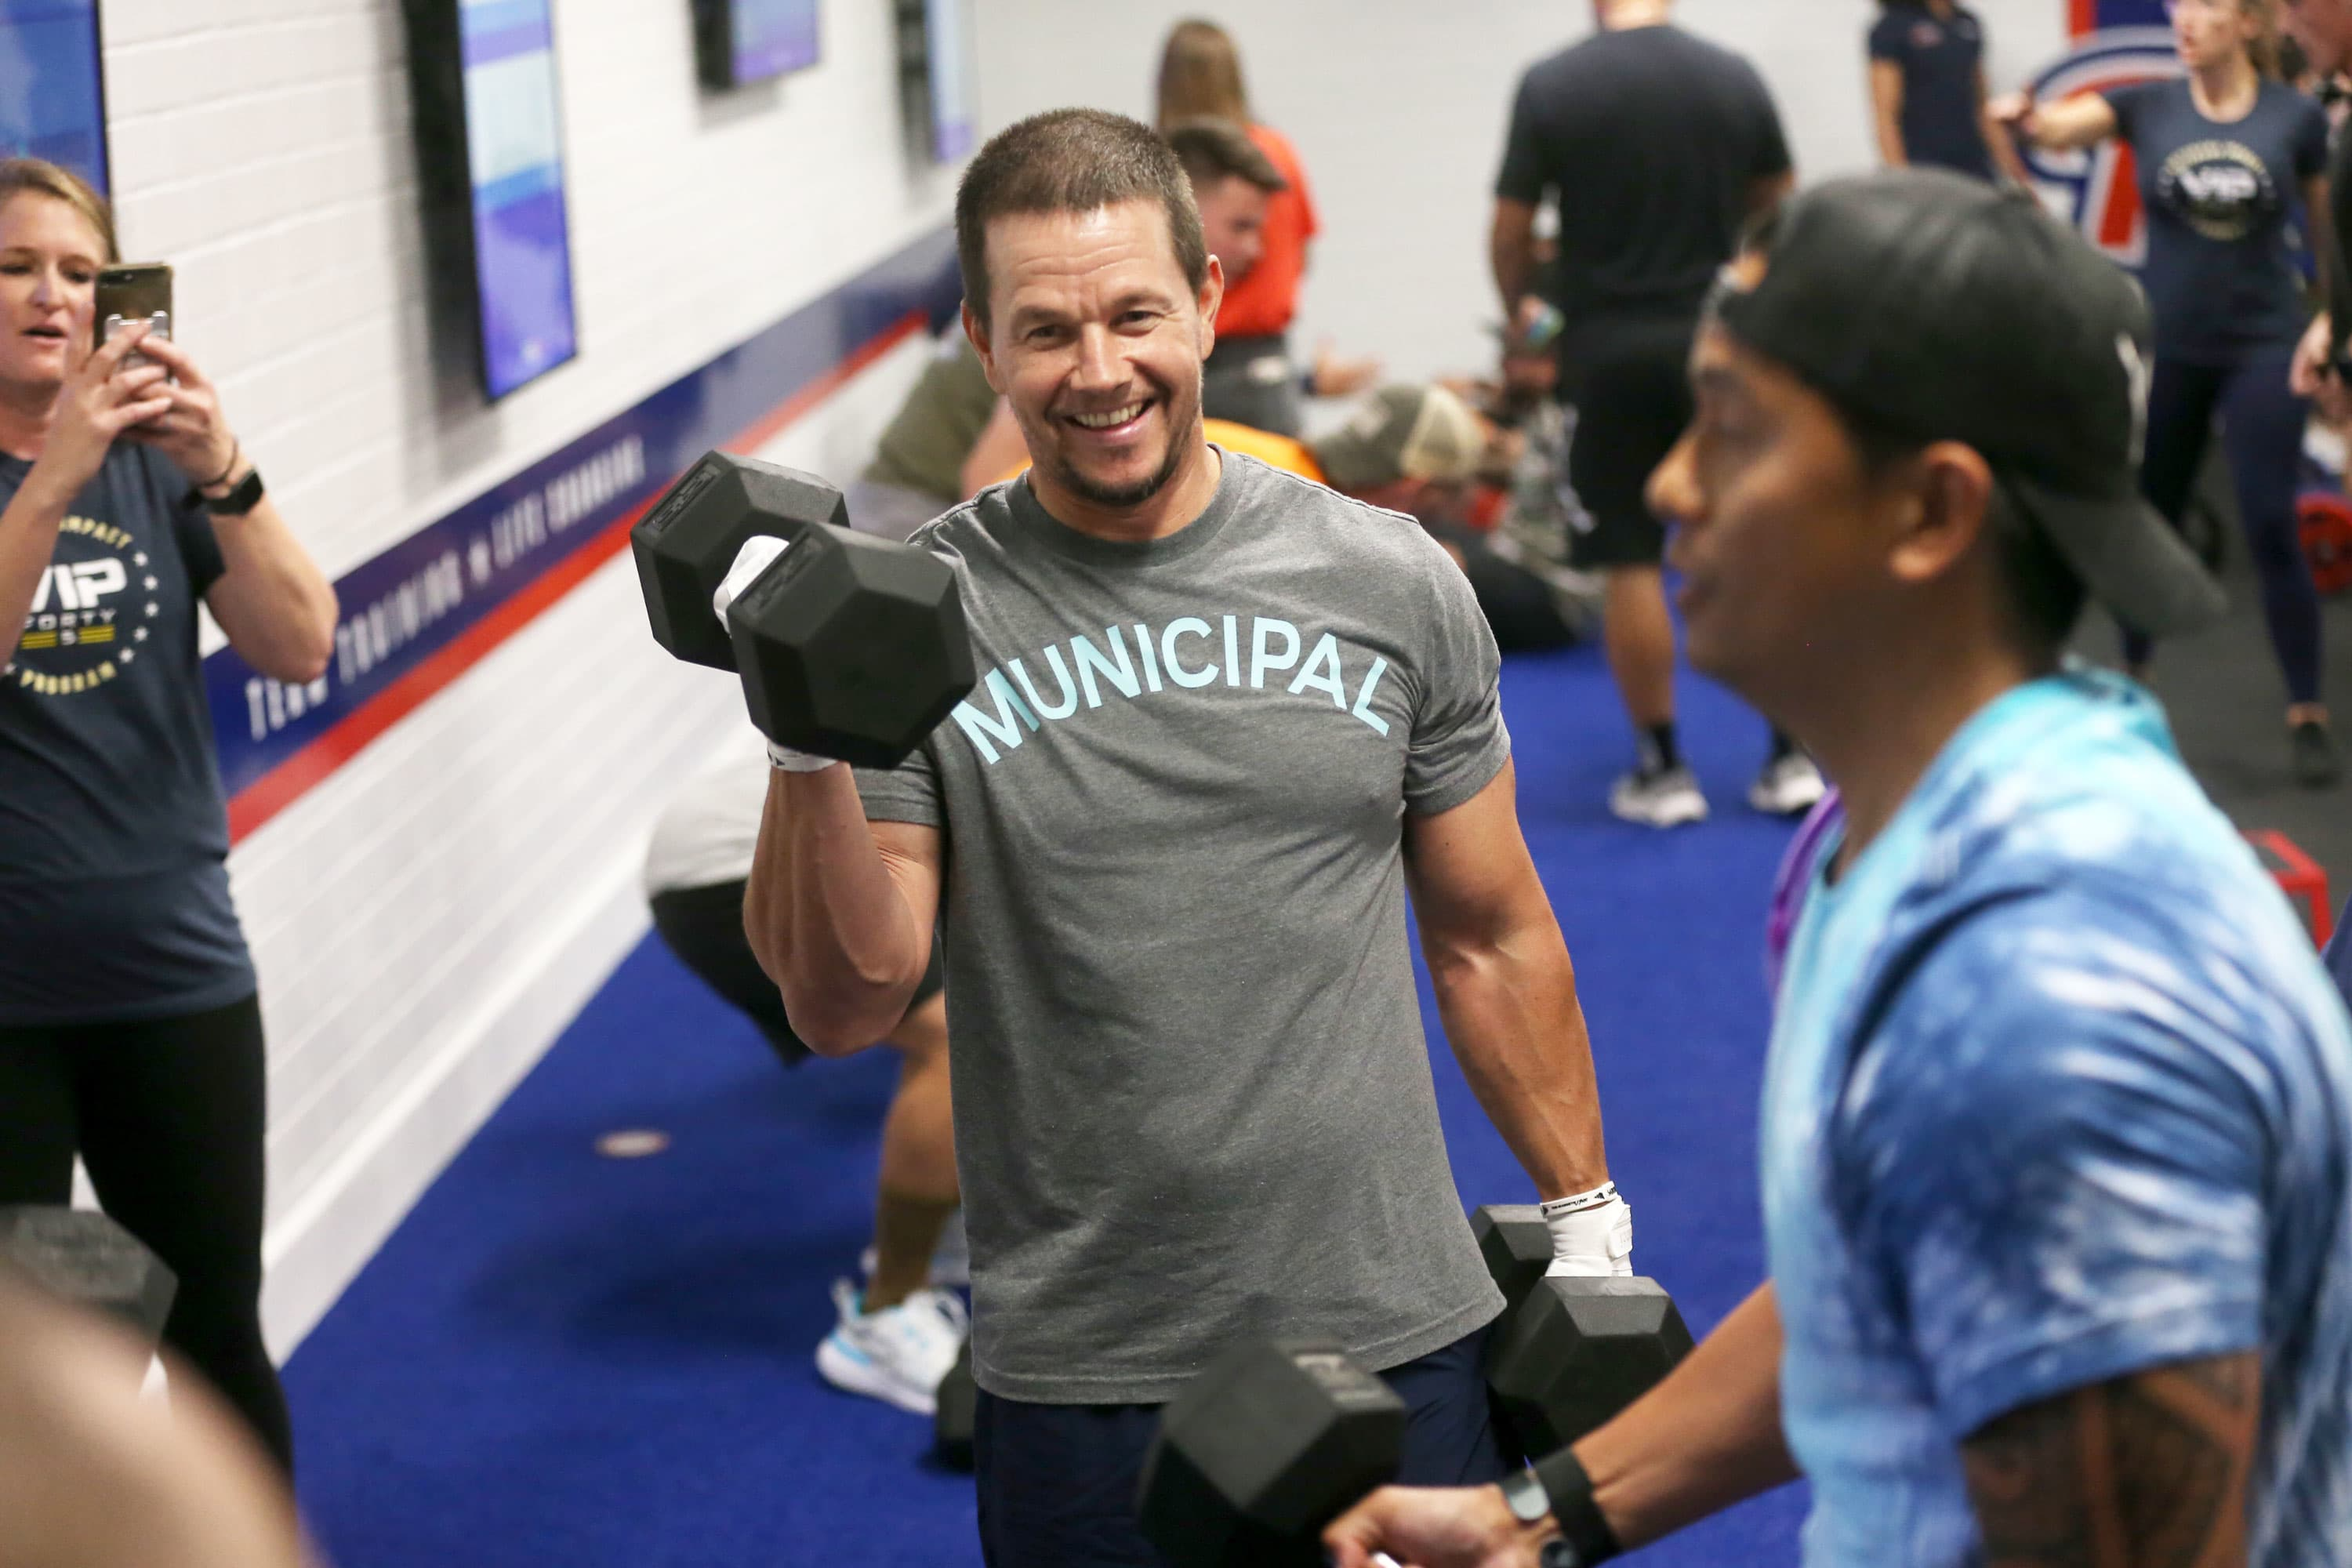 Mark Wahlberg-backed F45 pops on IPO day. The actor says the workouts have incredible energy